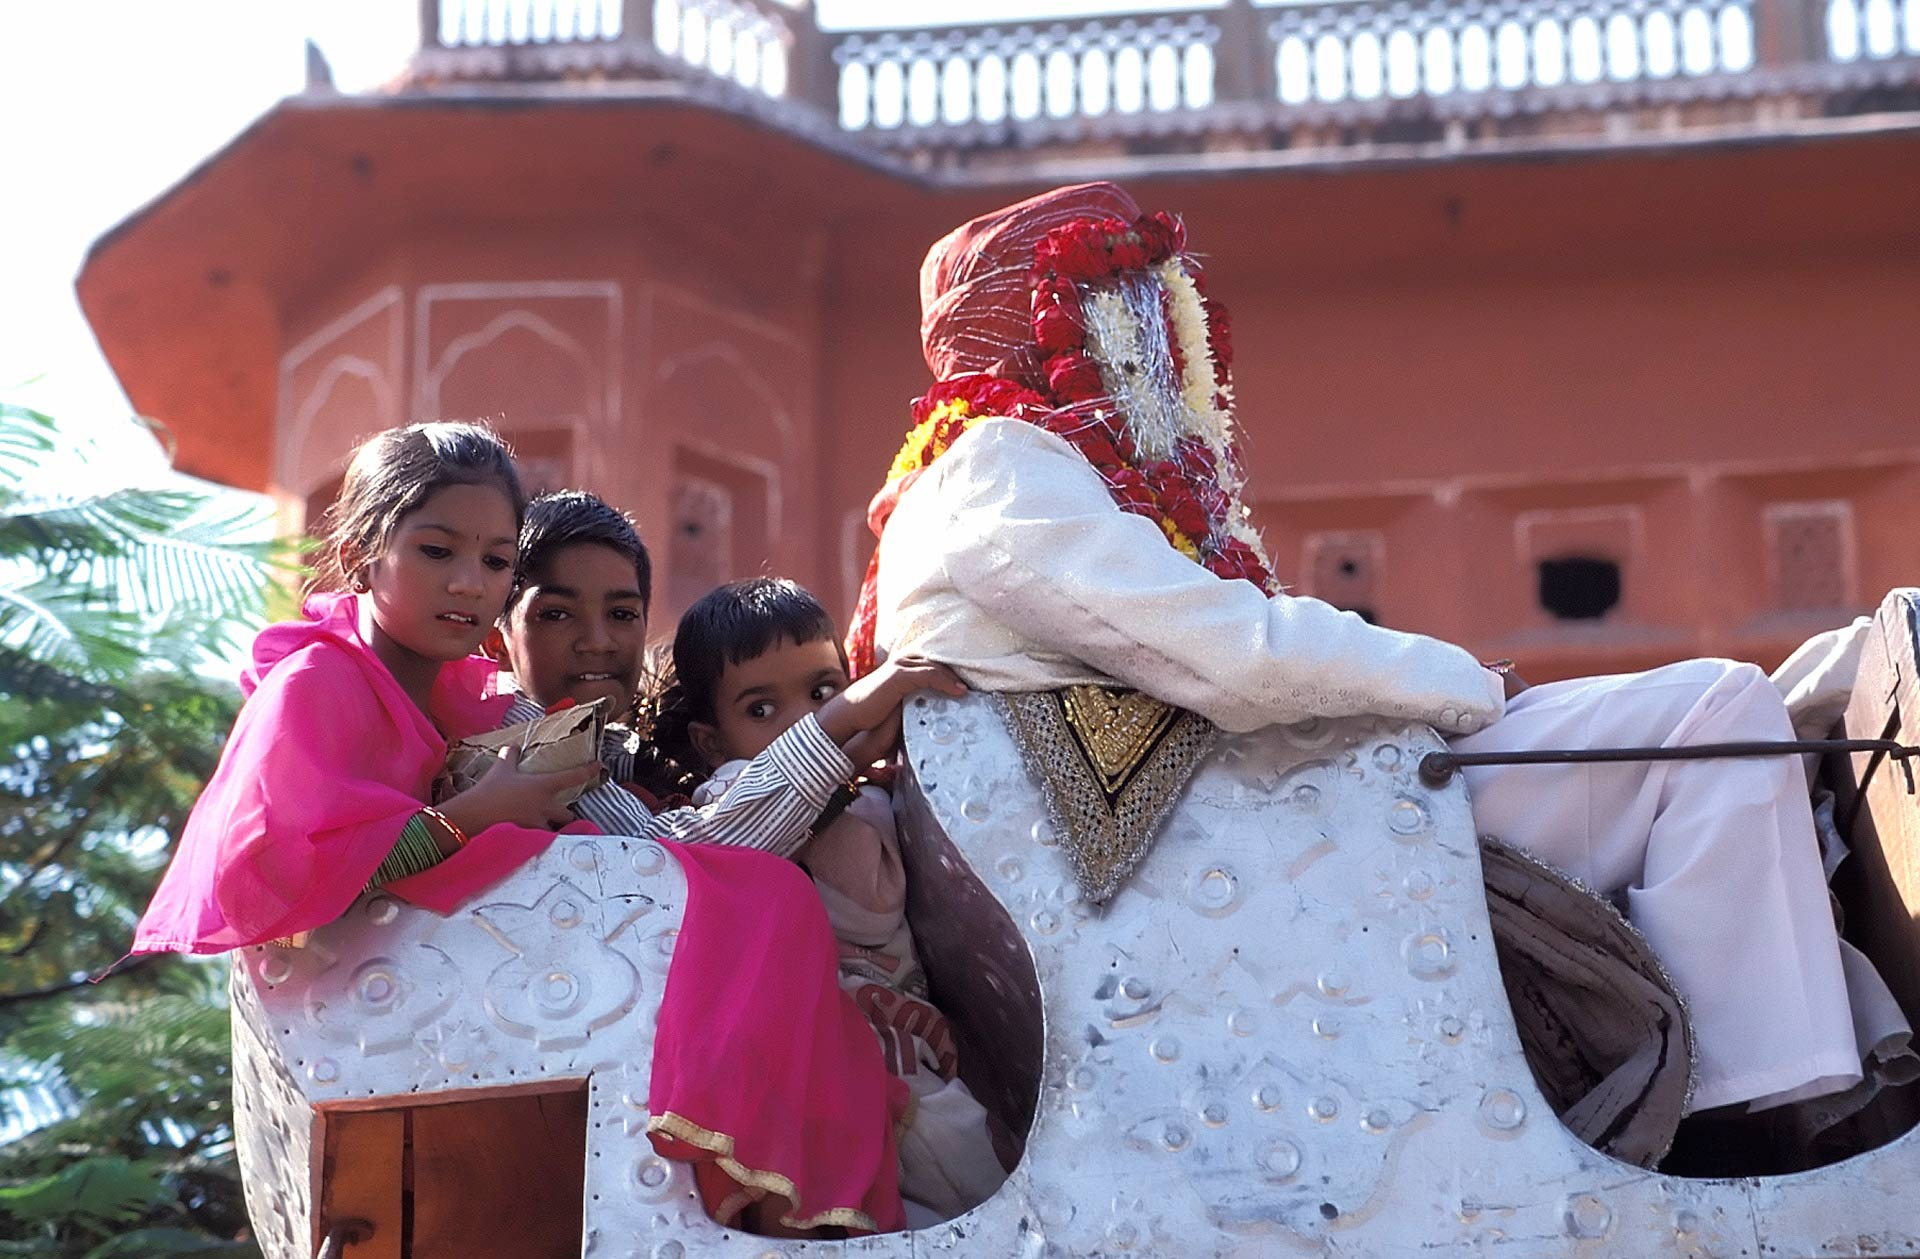 Wedding procession by the Hawa Mahal (Palace of the Winds), Jaipur, Rajasthan, India